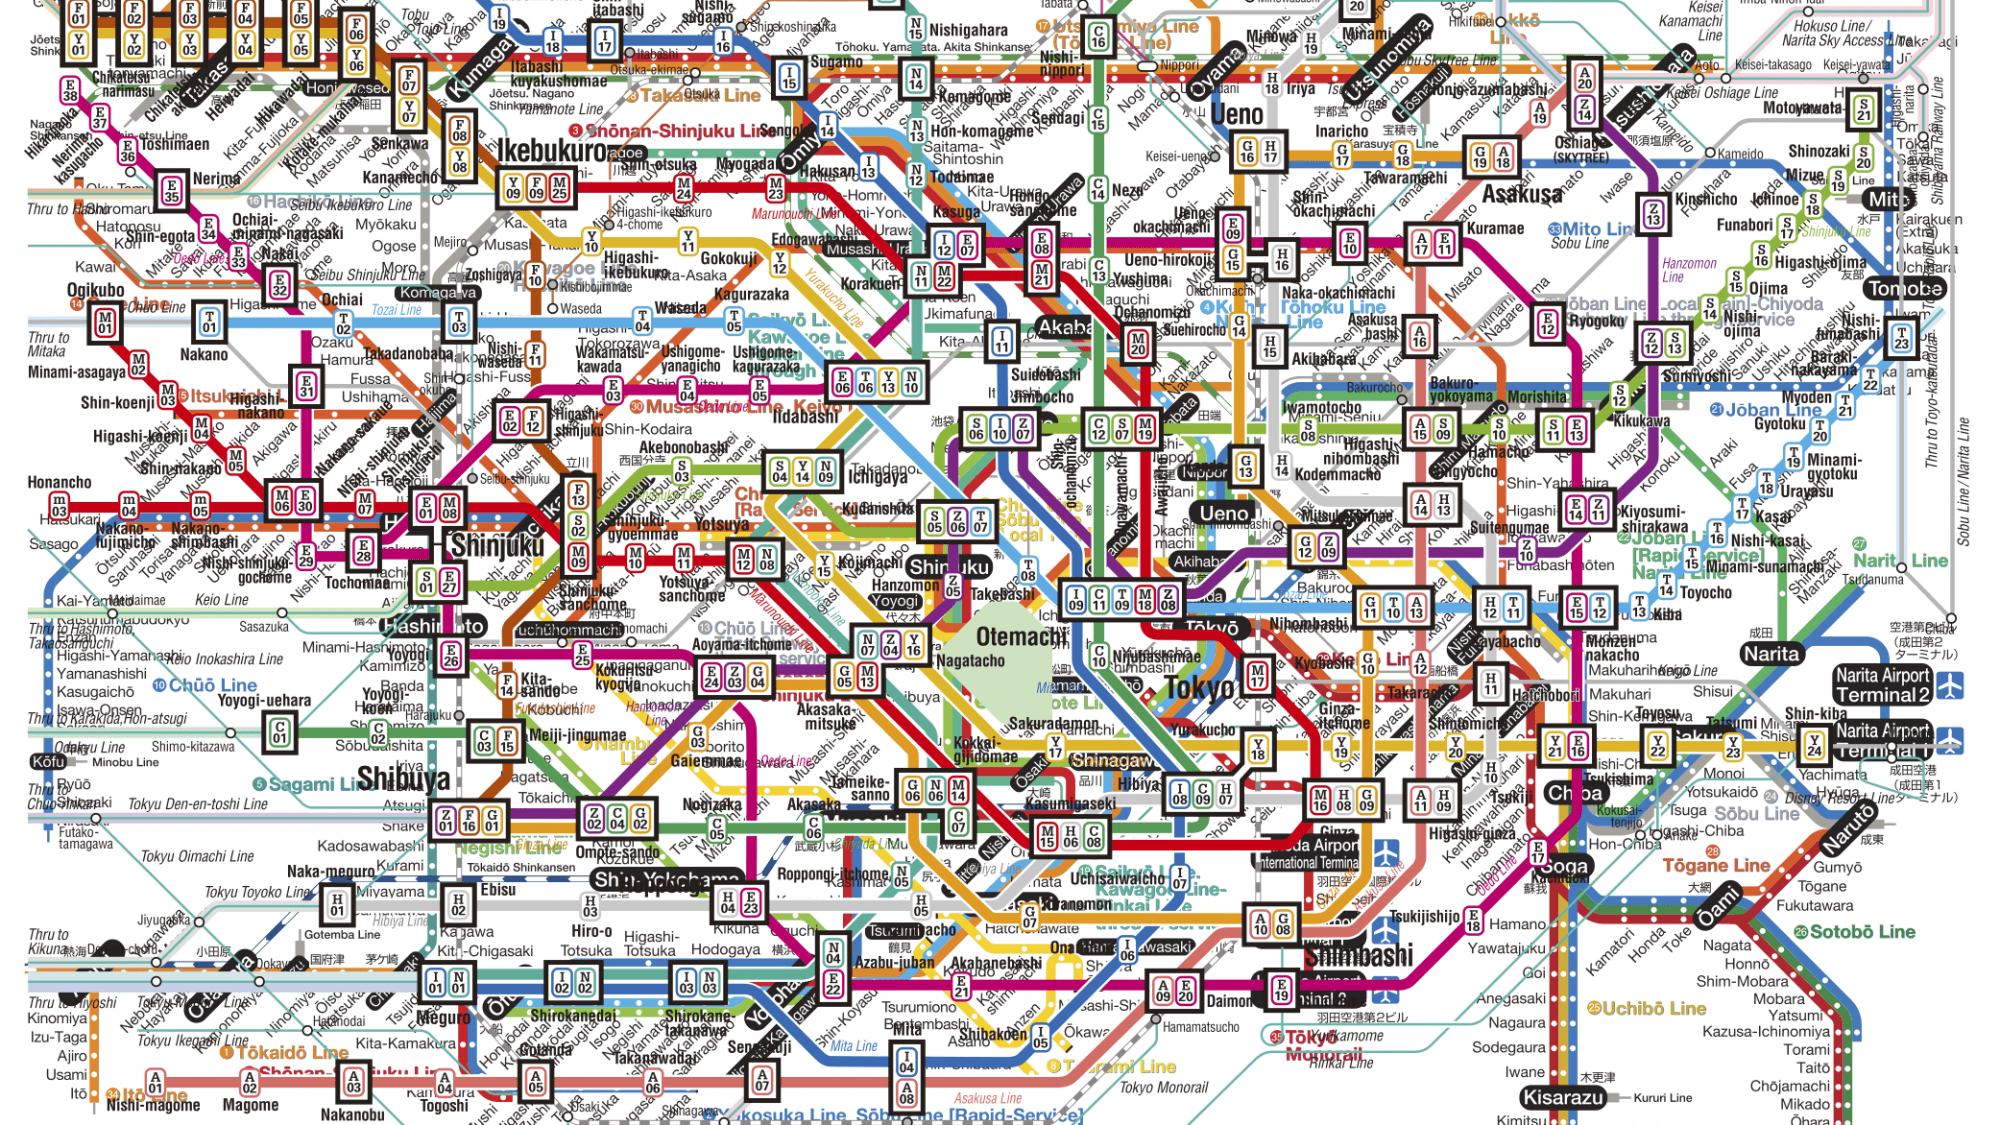 Inbetween The Lines of Tokyo's JR/Metro Maps – Randomwire on map of the sewers, map of bus system, map of the river system, map of the tri-state area, map of the city, map of the statue of liberty, map of the university campus, map of the harlem renaissance, map of the world's fair, map of the supreme court, map of the navy yard,